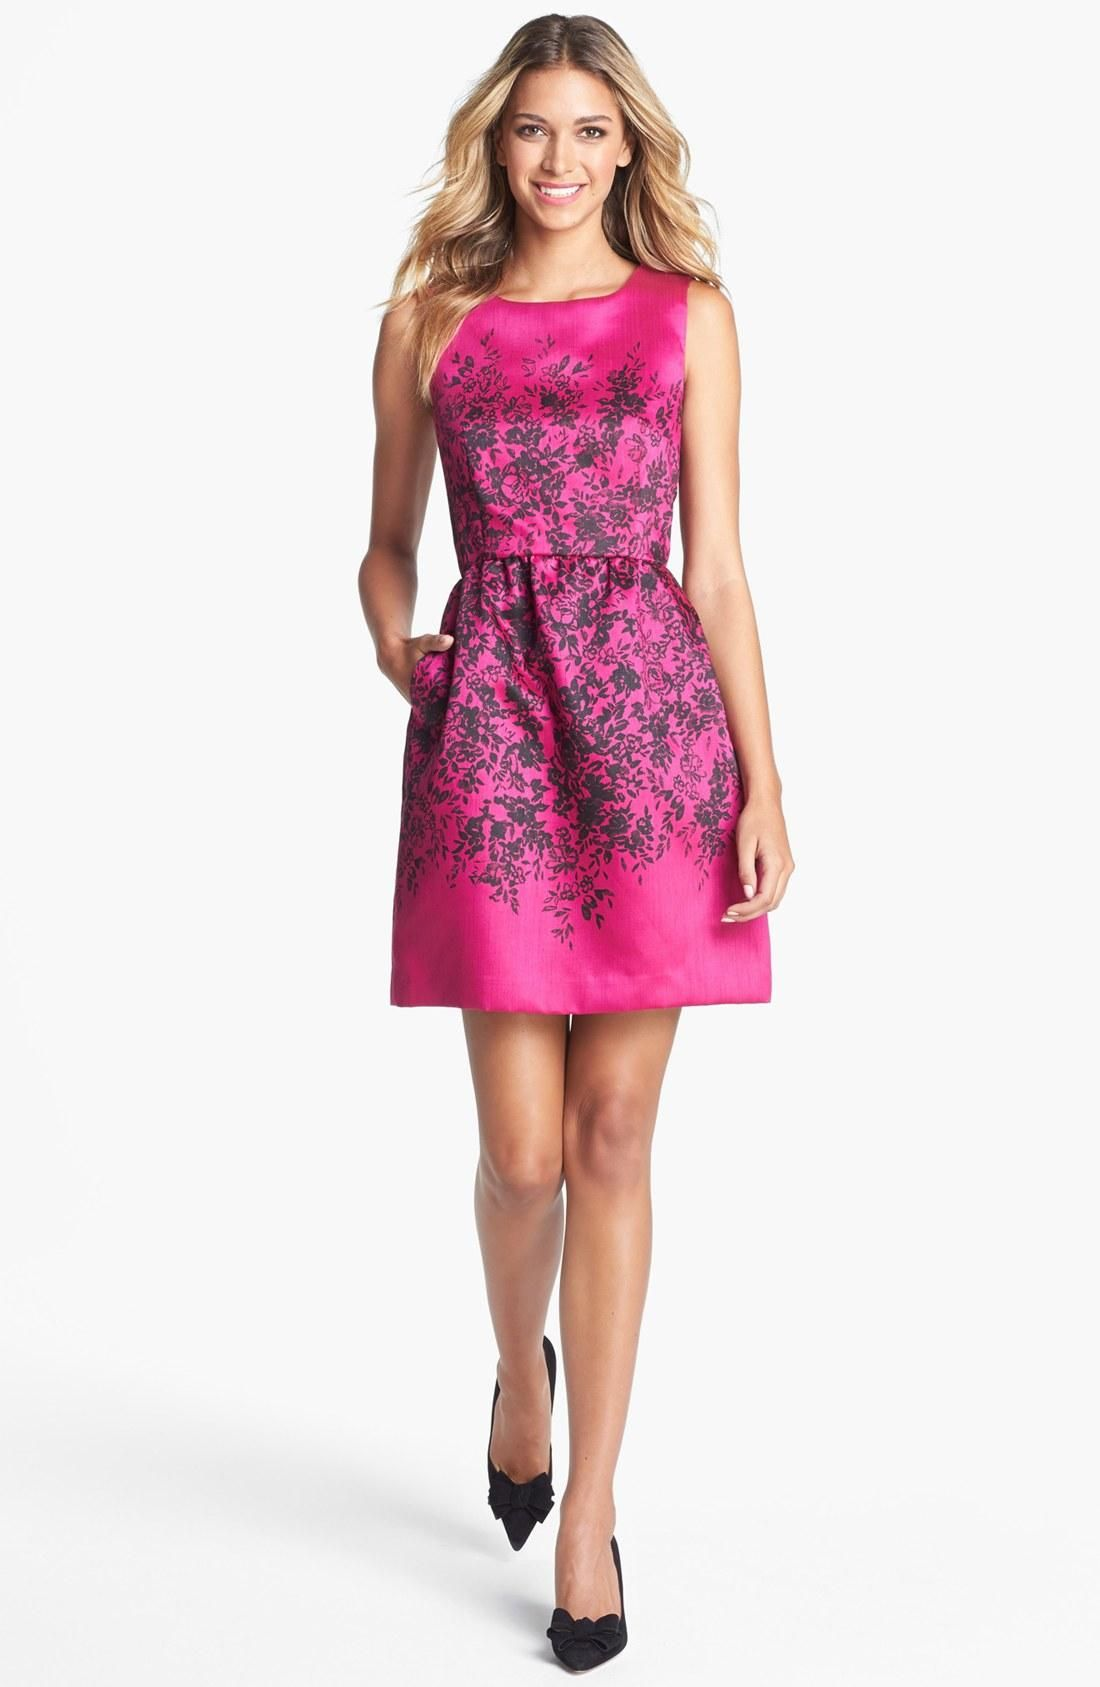 Cool floral print on fuchsia - love for bridesmaids! | Bold Bright ...